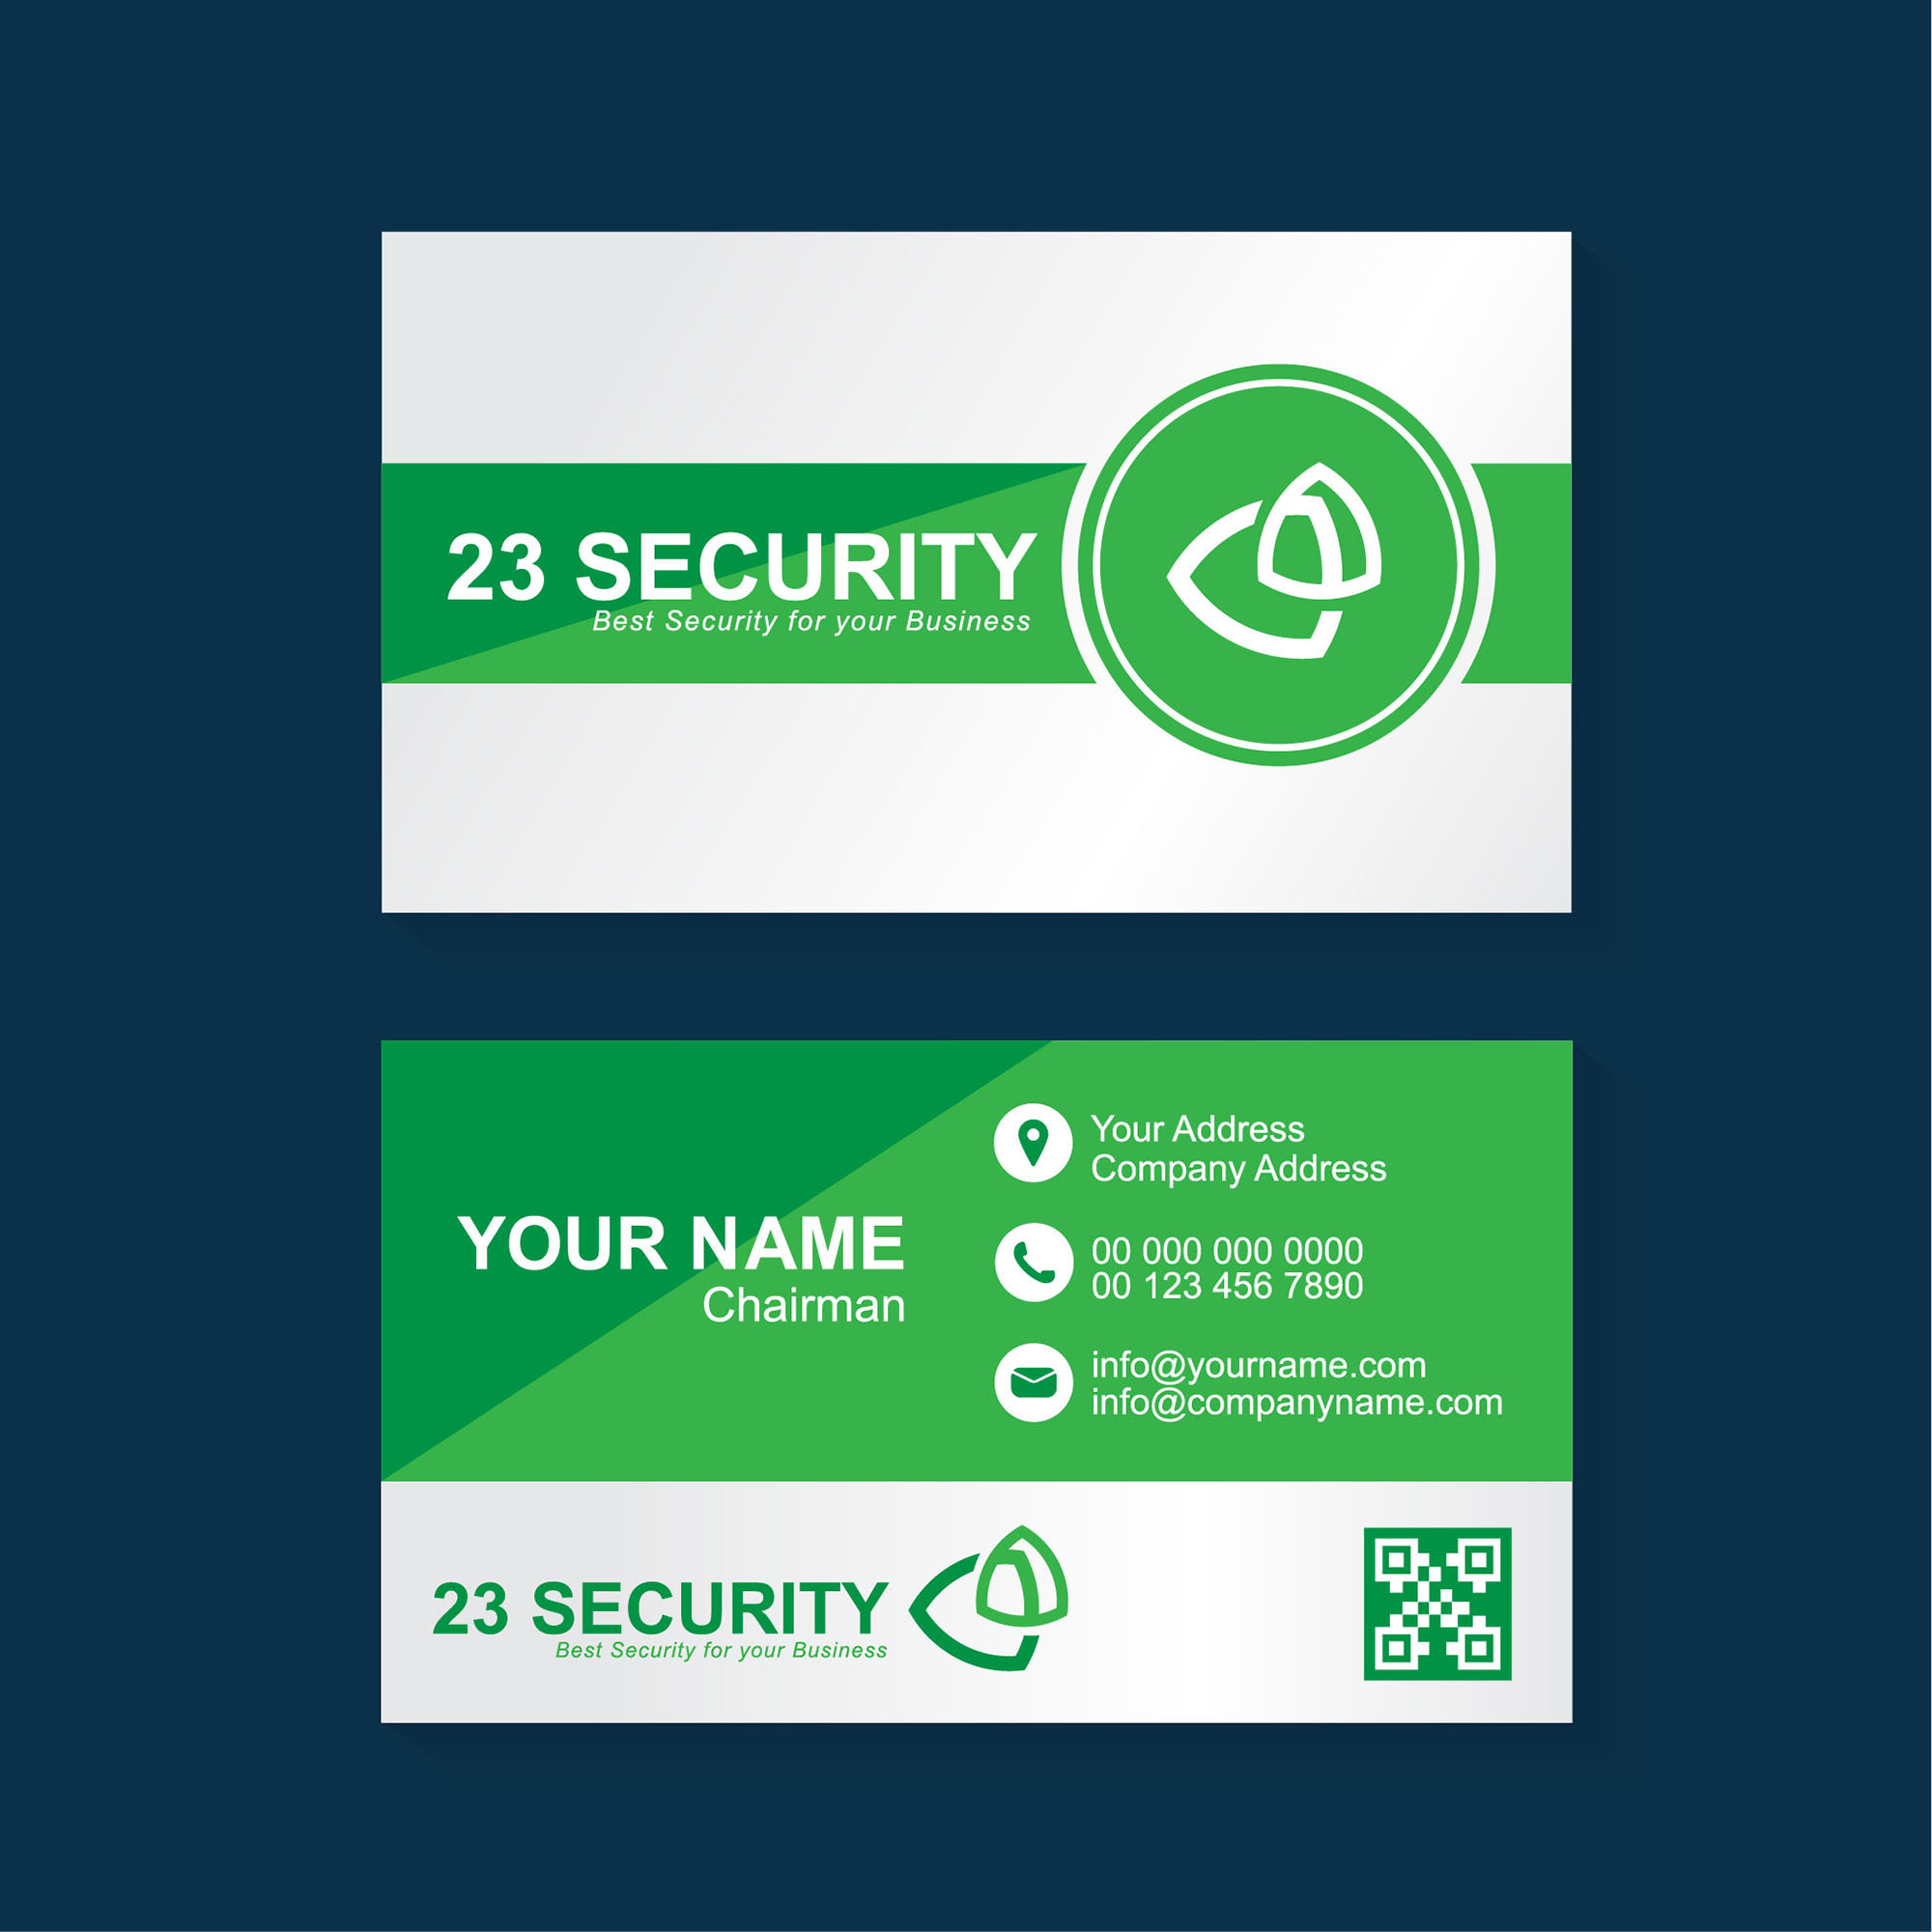 Security business card template free download wisxi business card business cards business card design business card template design templates accmission Images